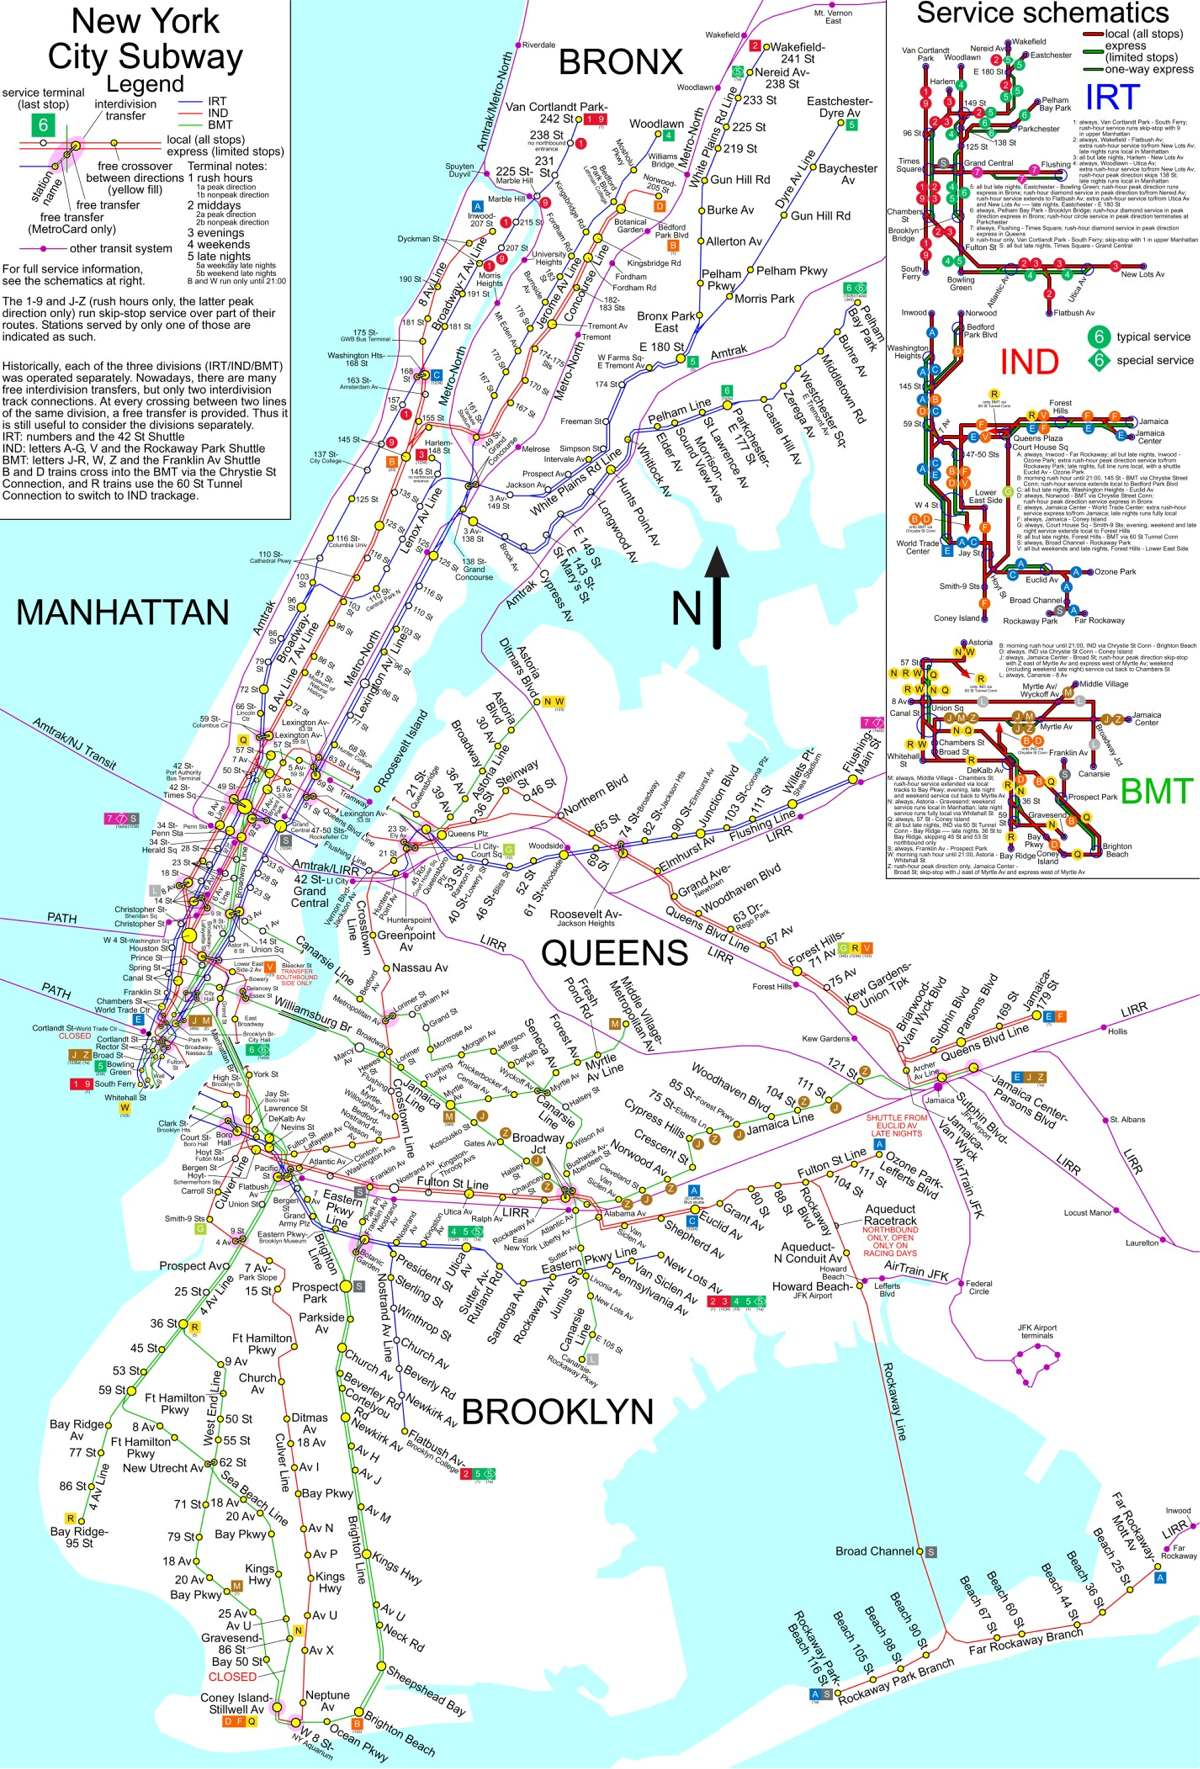 A large detailed New York City subway map